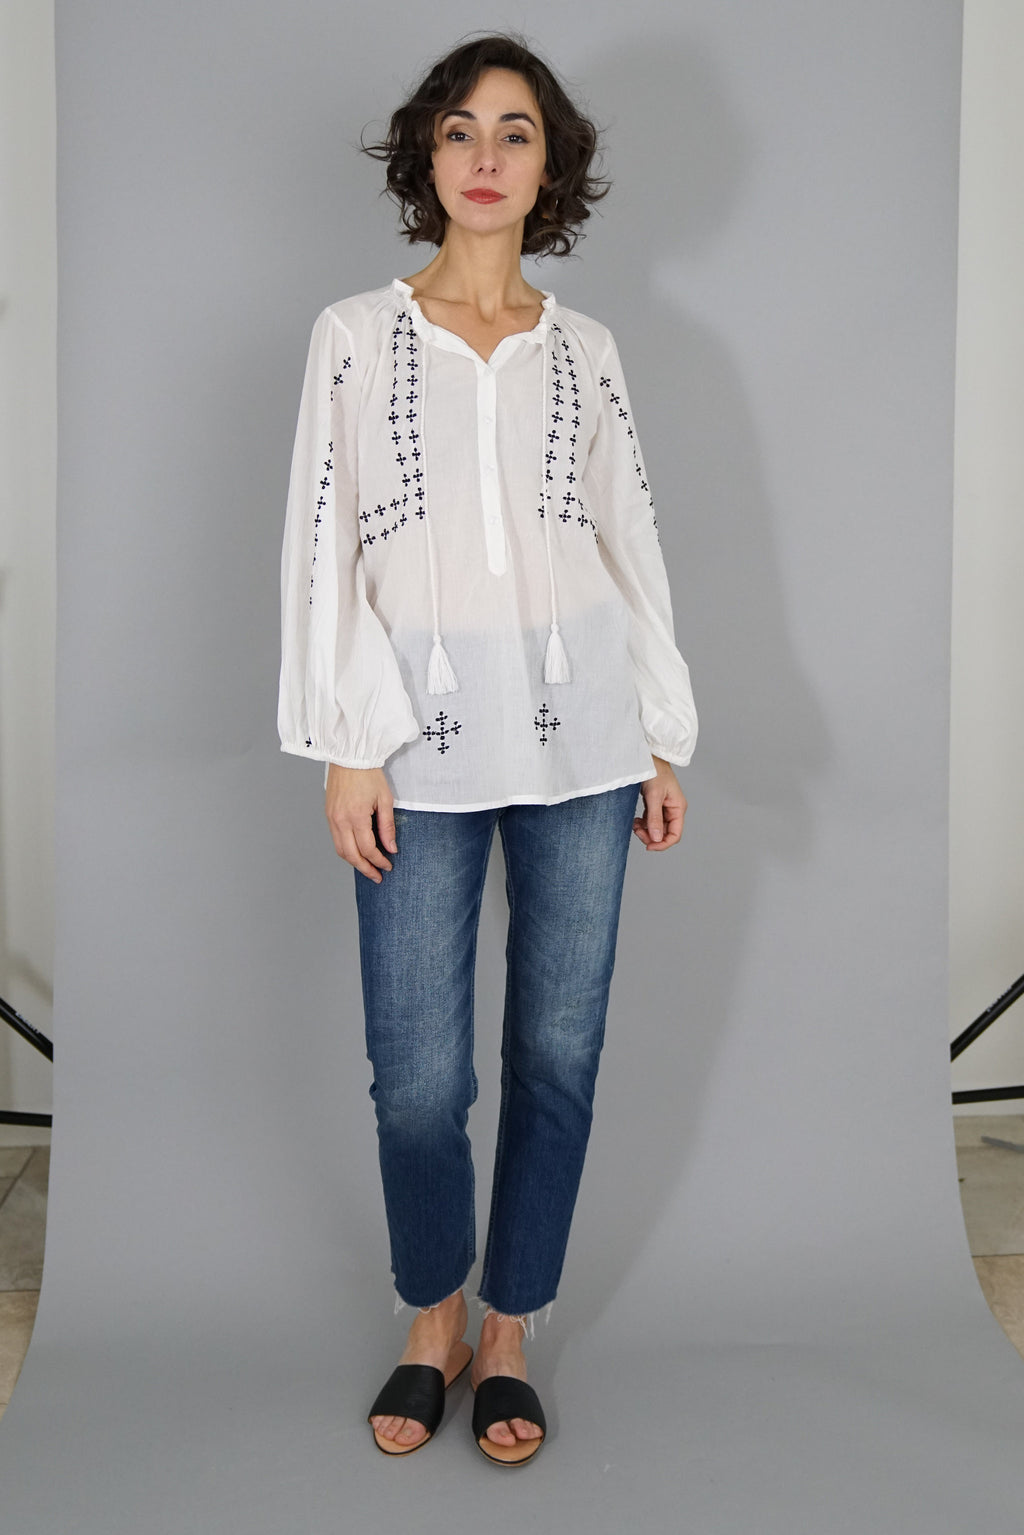 Bardot Top - Embroidered White